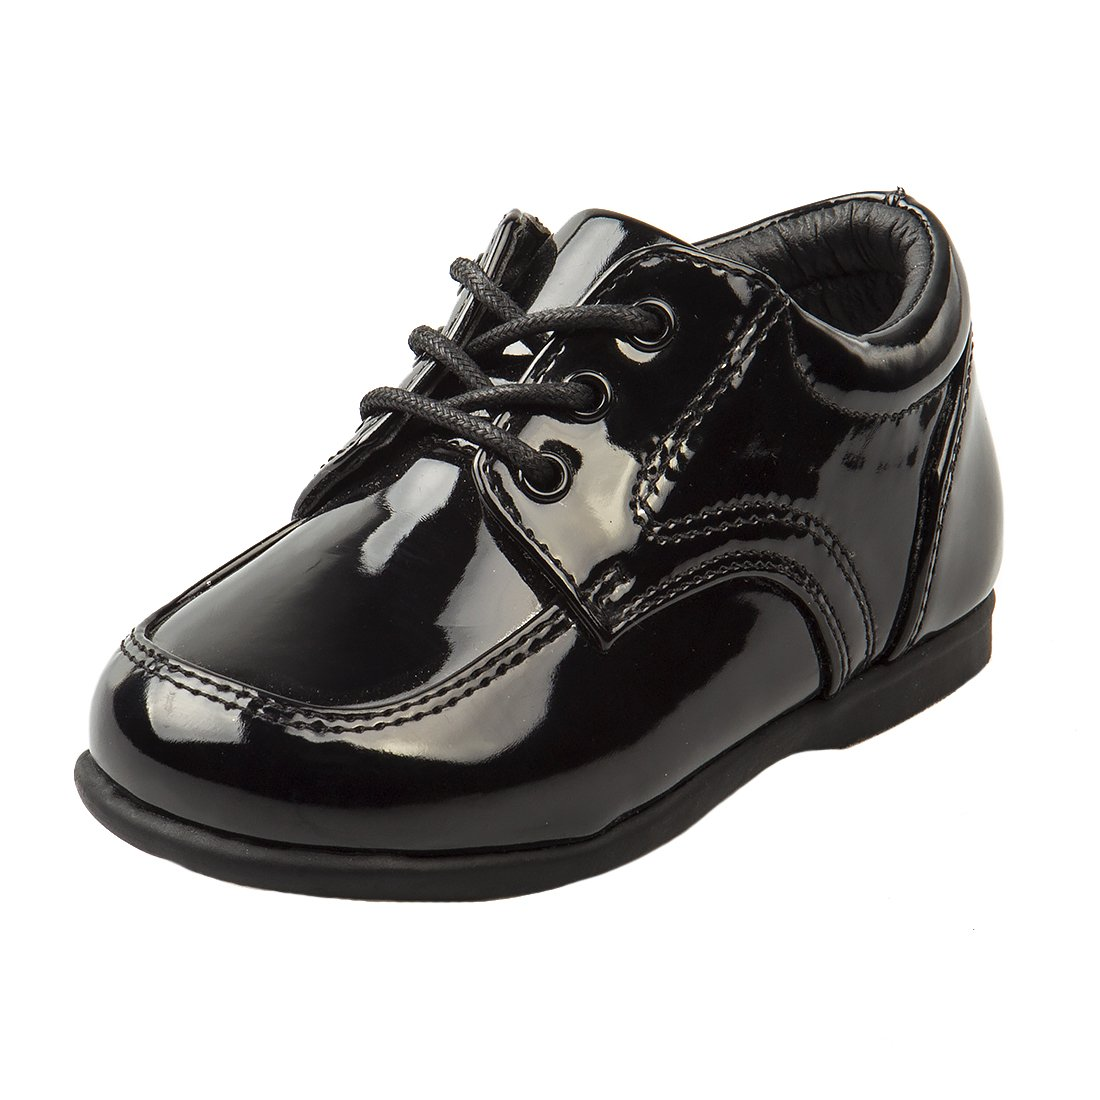 Josmo Baby Boy's First Steps Walking Dress Shoe, Black Patent, 5 M US Toddler by Josmo